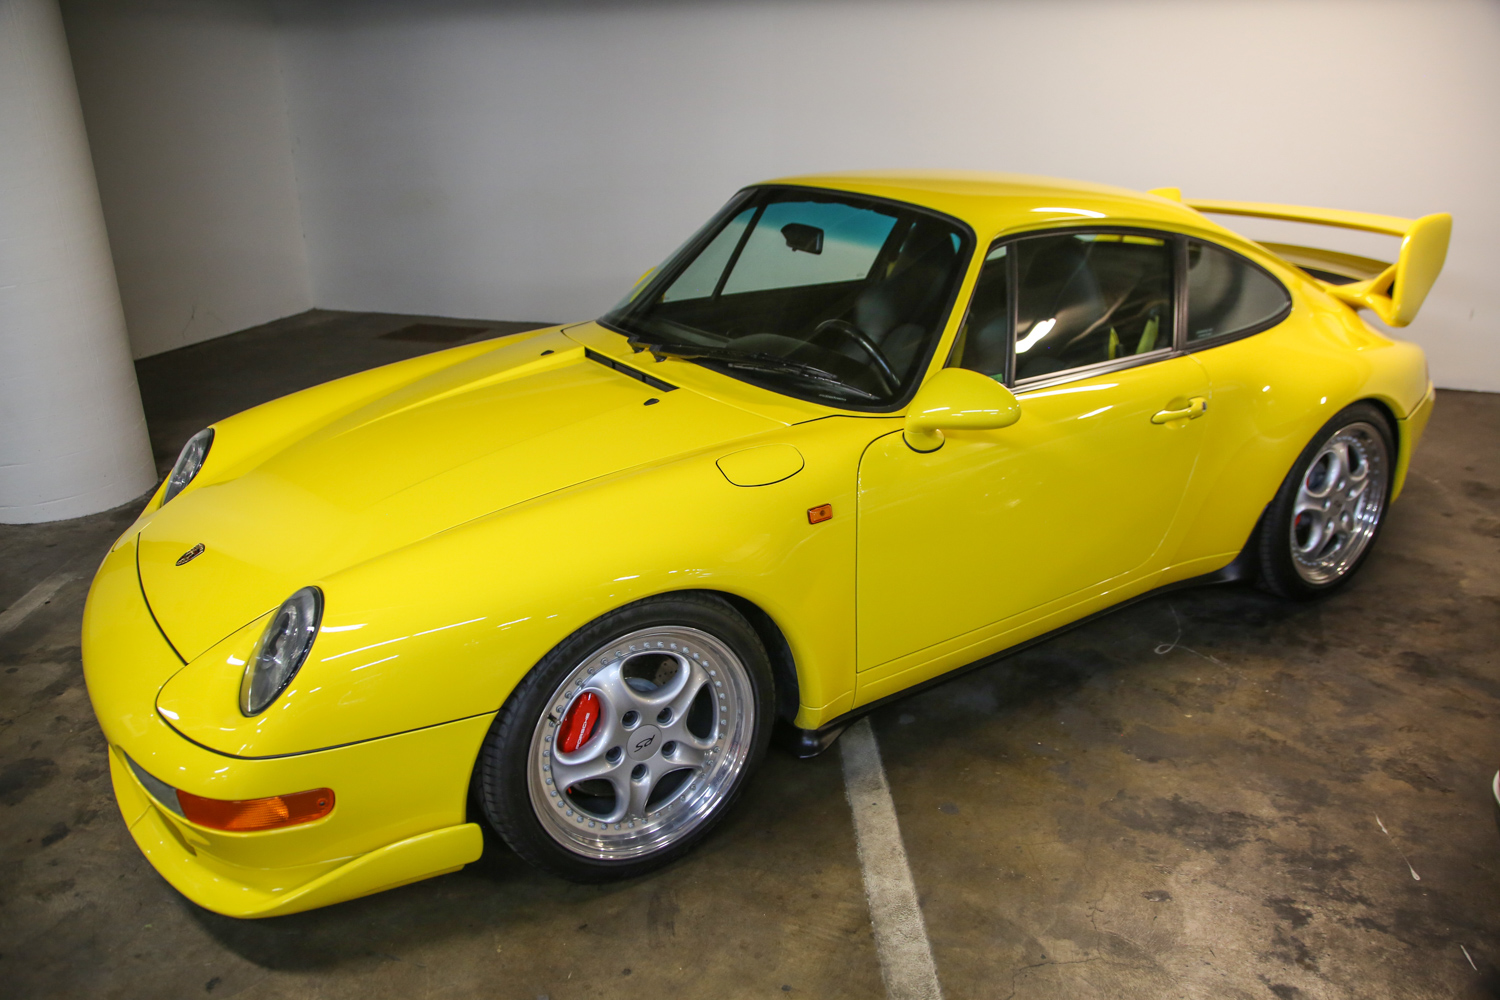 The 993 Carrera RS is one of the most beautiful iterations in the long history of the 911.